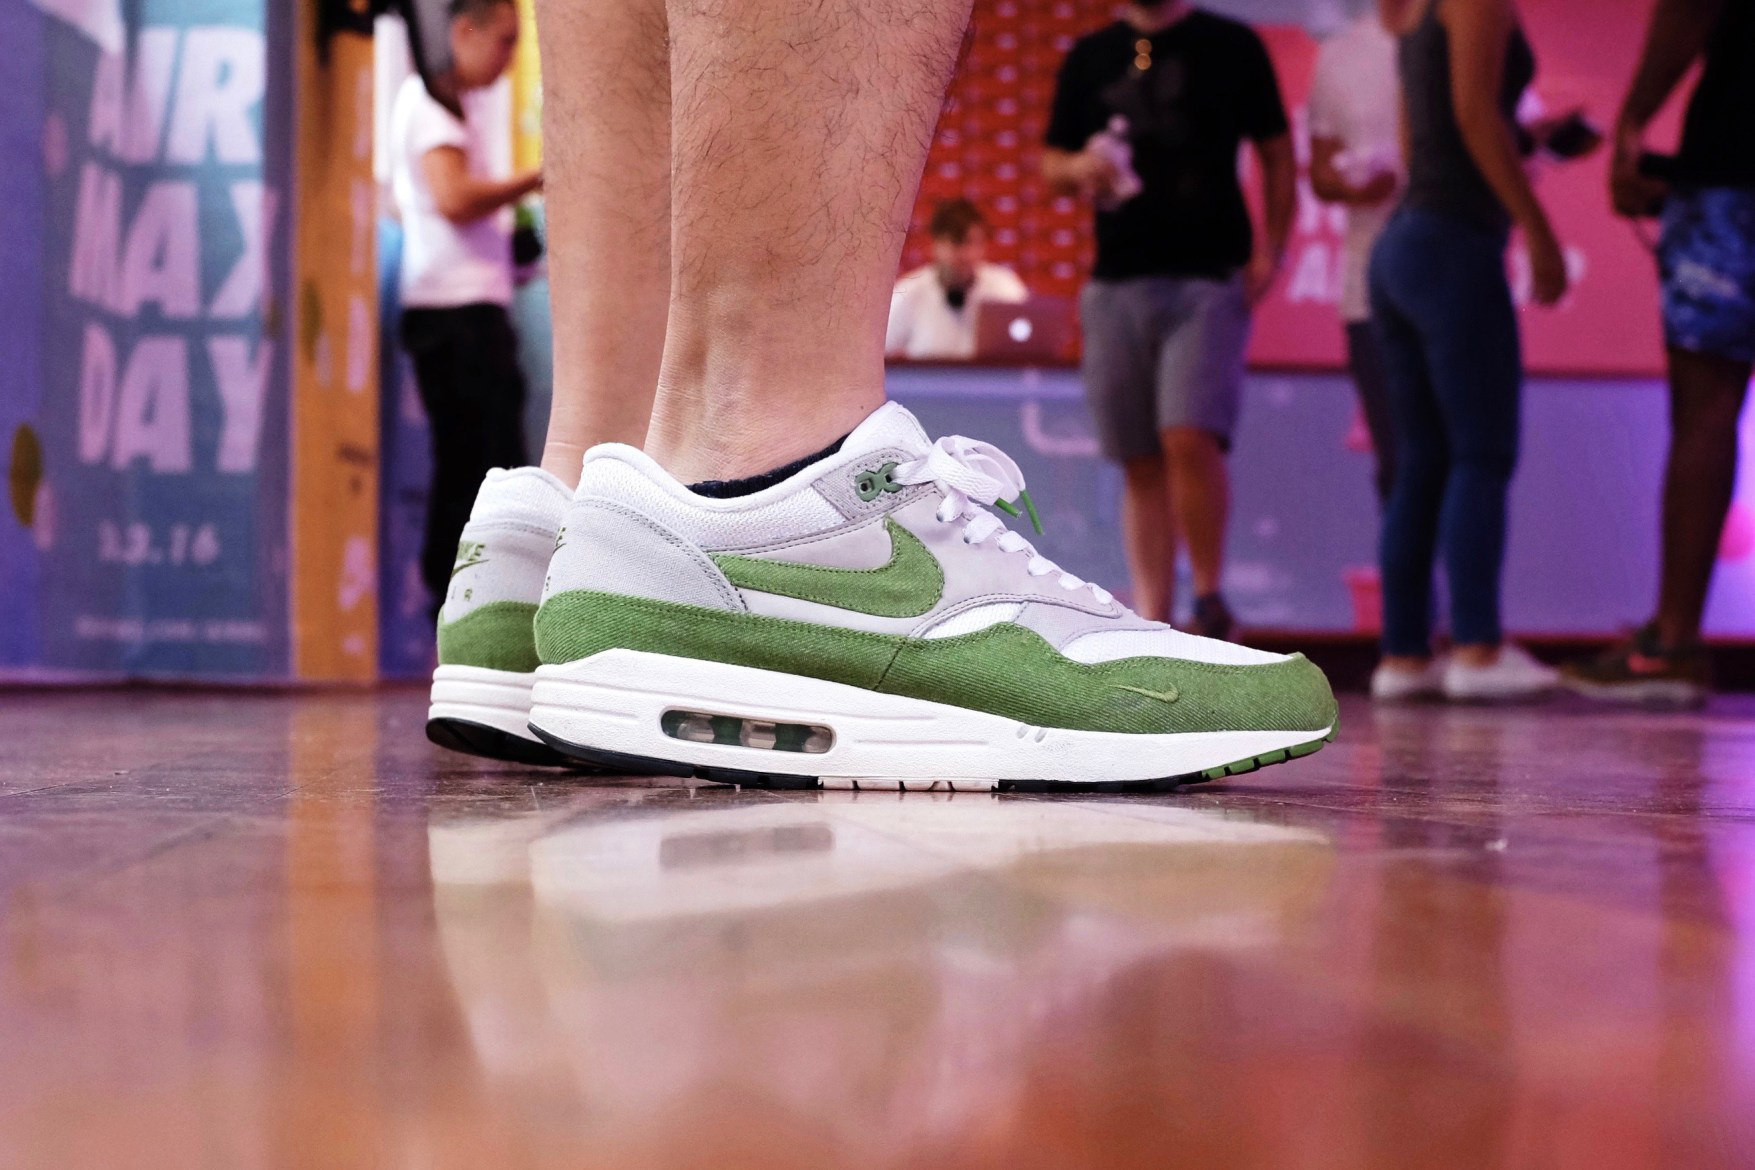 #OnFeet at Sydney Nike Air Max Lab 2016